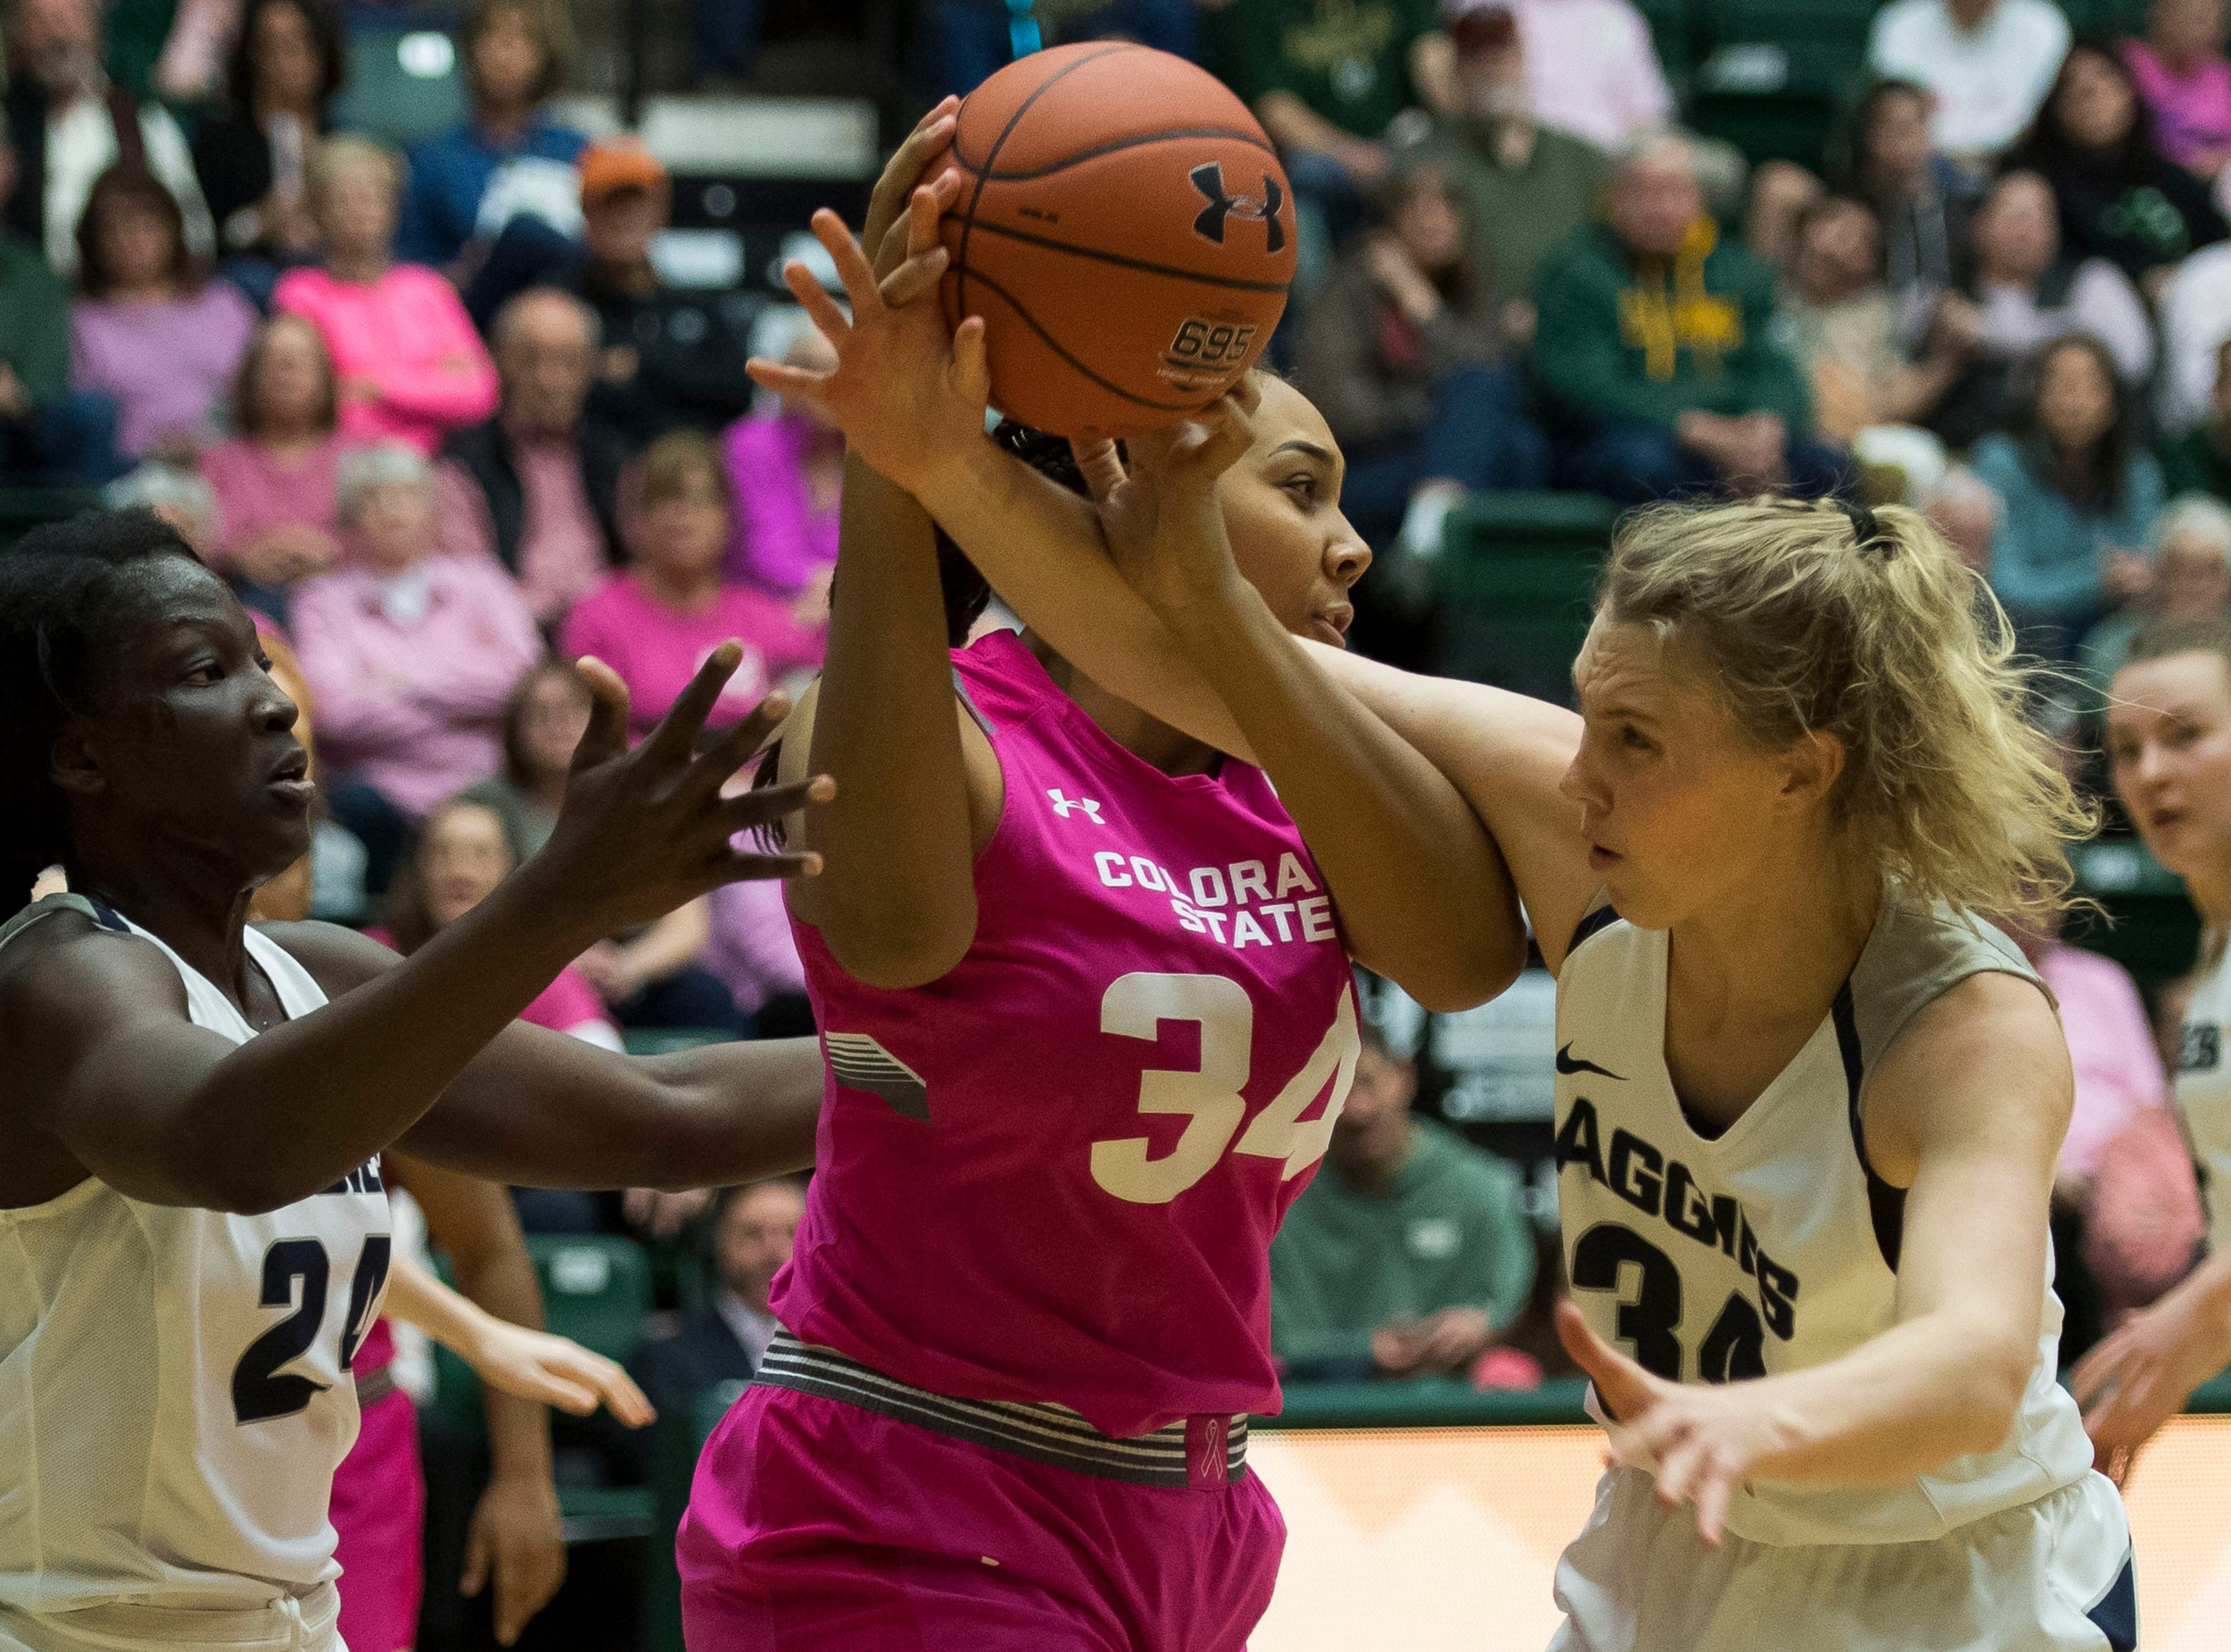 Colorado State University sophomore center Liah Davis (34) is fouled by Utah State freshman forward Emma Dudley (34) on Saturday, Jan. 19, 2019, at Moby Arena in Fort Collins, Colo.